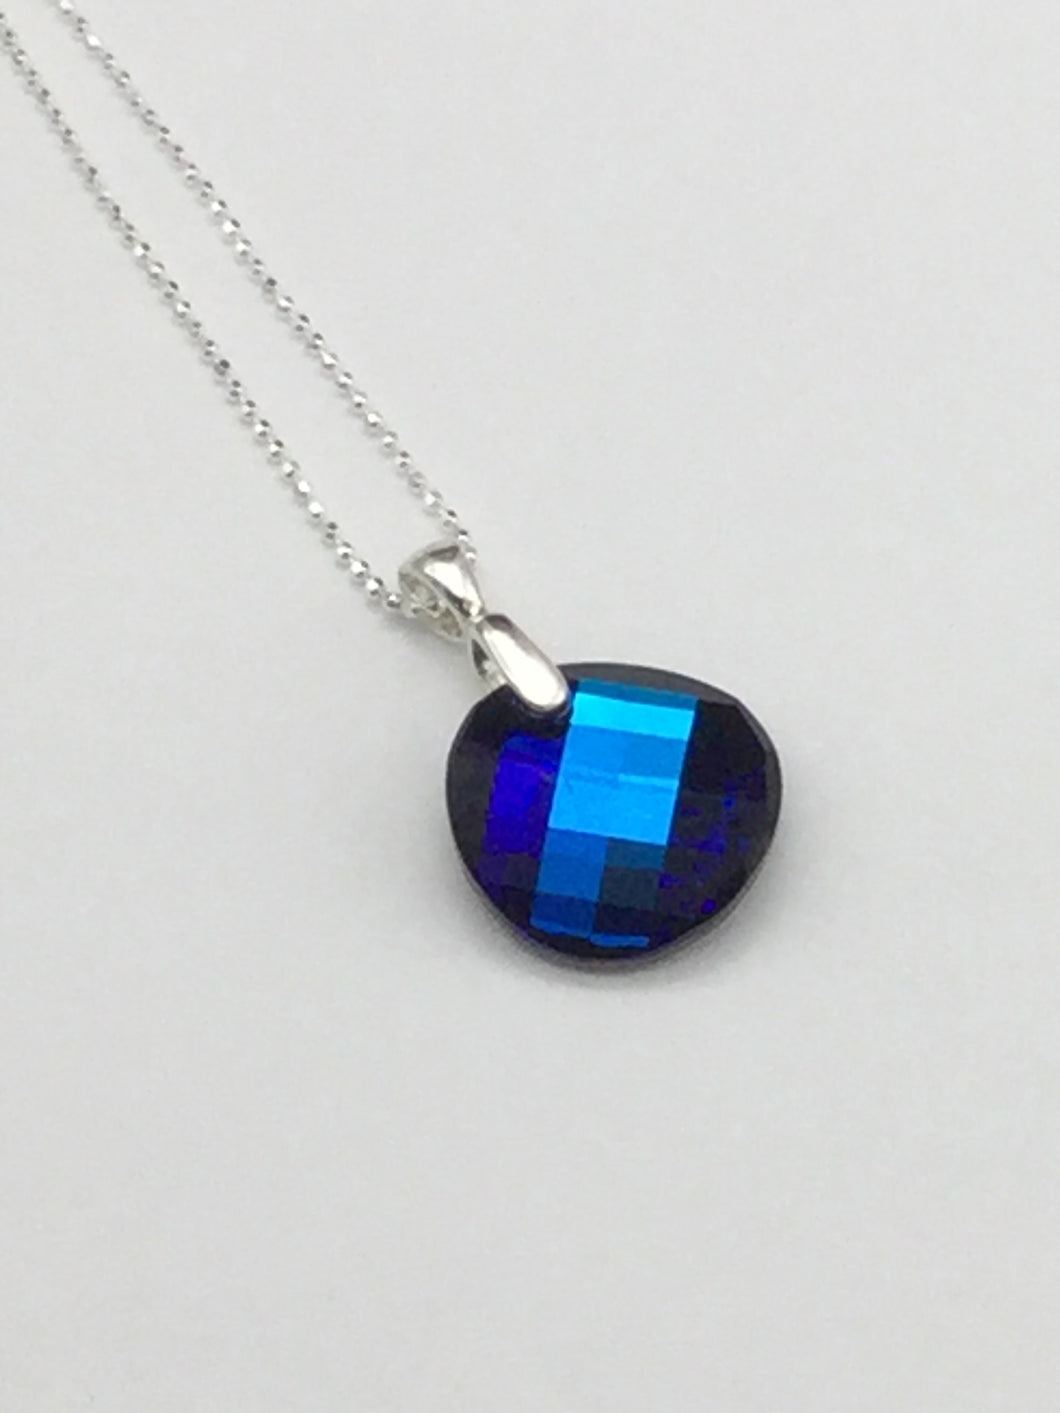 Swarovski Crystal Blue Checkerboard and Sterling Silver Necklace